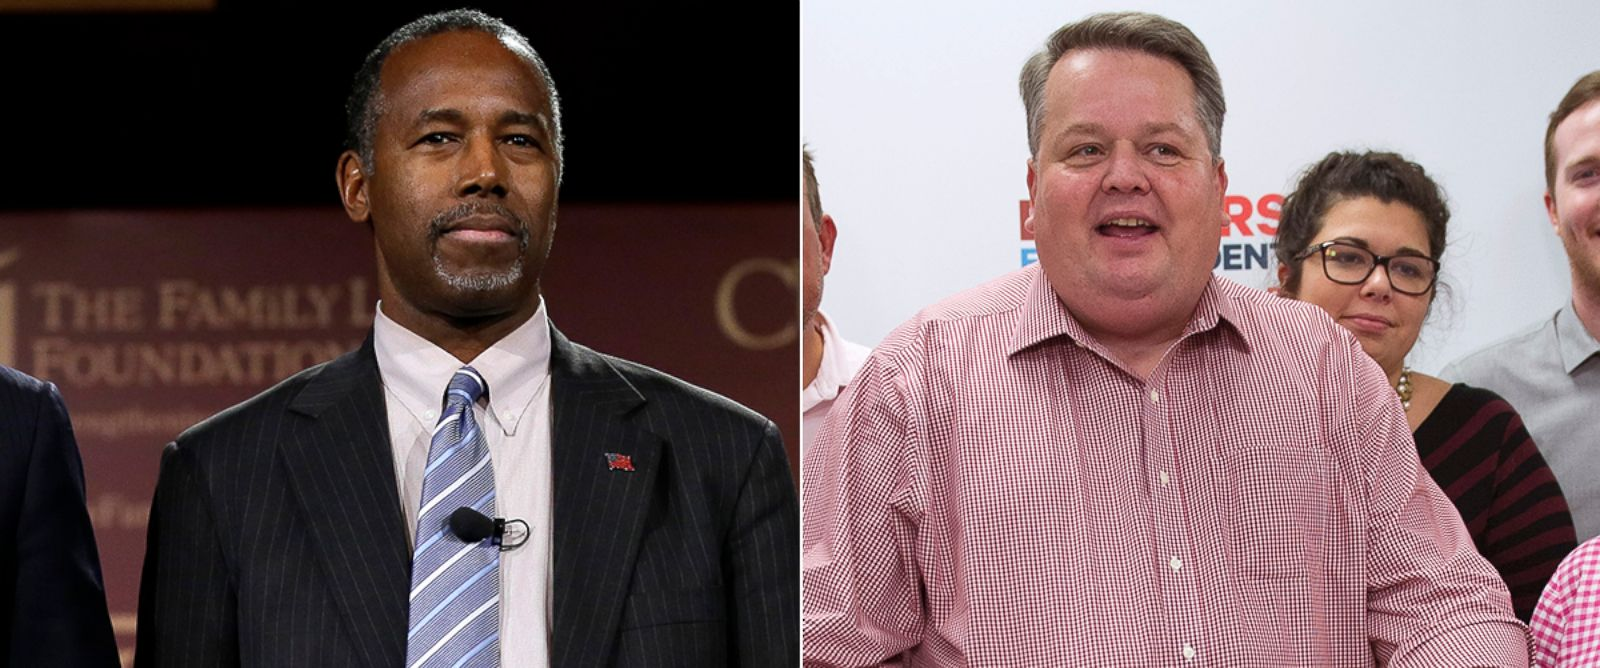 PHOTO: Ben Carson stands on stage during the Presidential Family Forum, Nov. 20, 2015, in Des Moines, Iowa. Ben Carsons former campaign manager Barry Bennett at the Carson campaign headquarters in Alexandria, Va., Sept. 30, 2015.